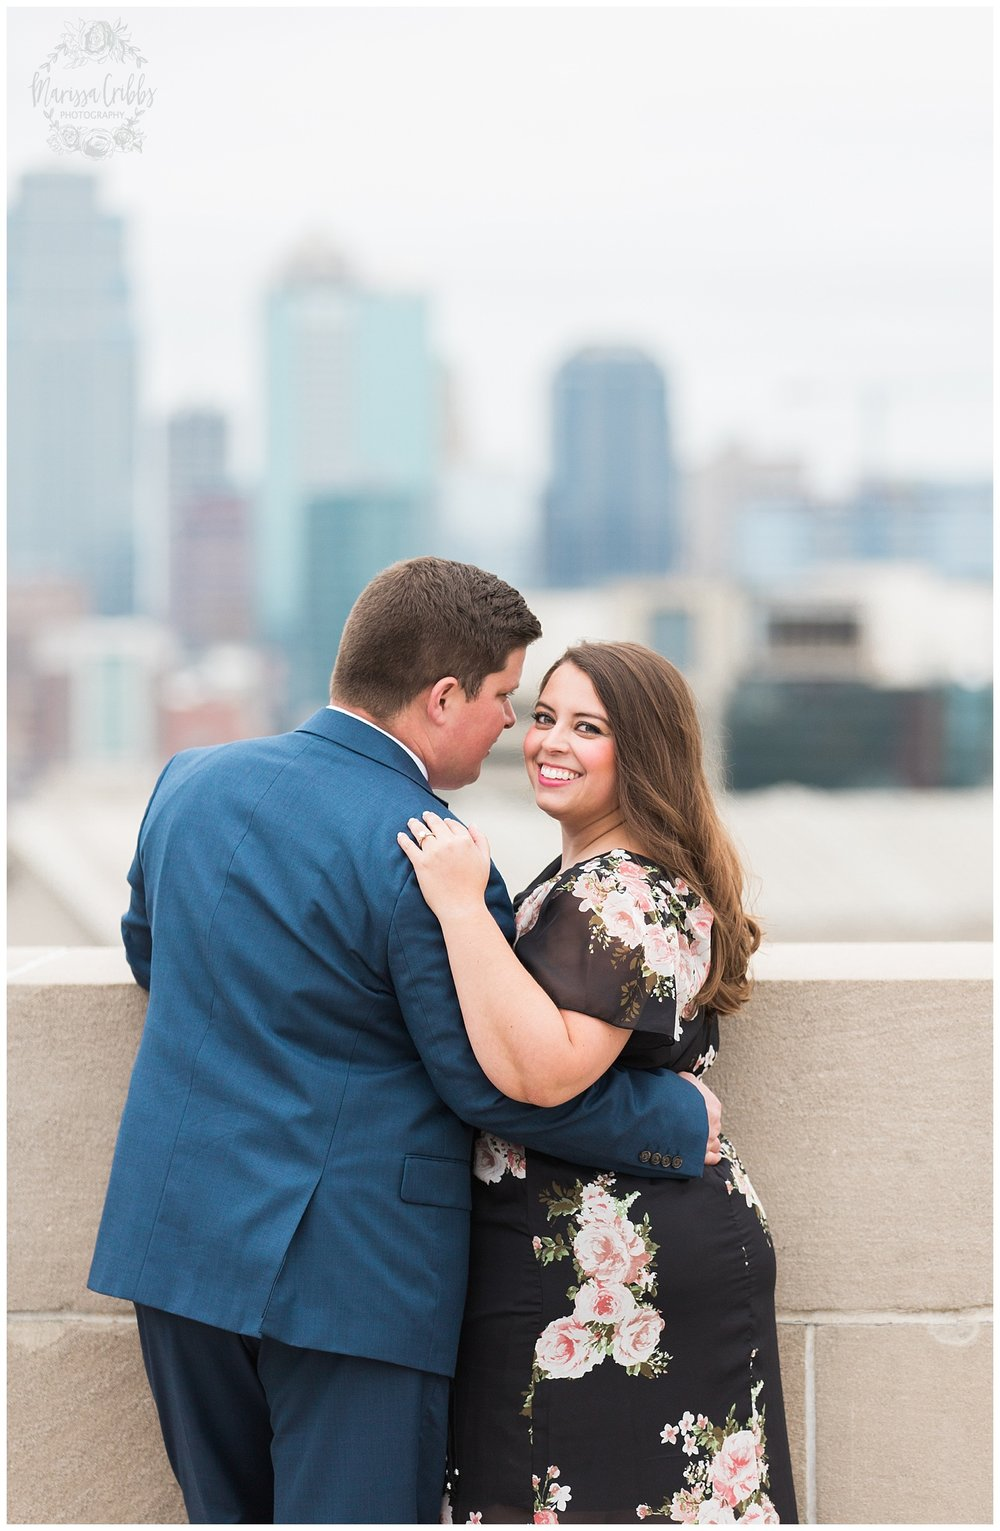 ANDREA & MICHAEL ENGAGEMENT | LIBERTY MEMORIAL ENGAGEMENT PHOTOGRAPHY | MARISSA CRIBBS PHOTOGRAPHY_3032.jpg